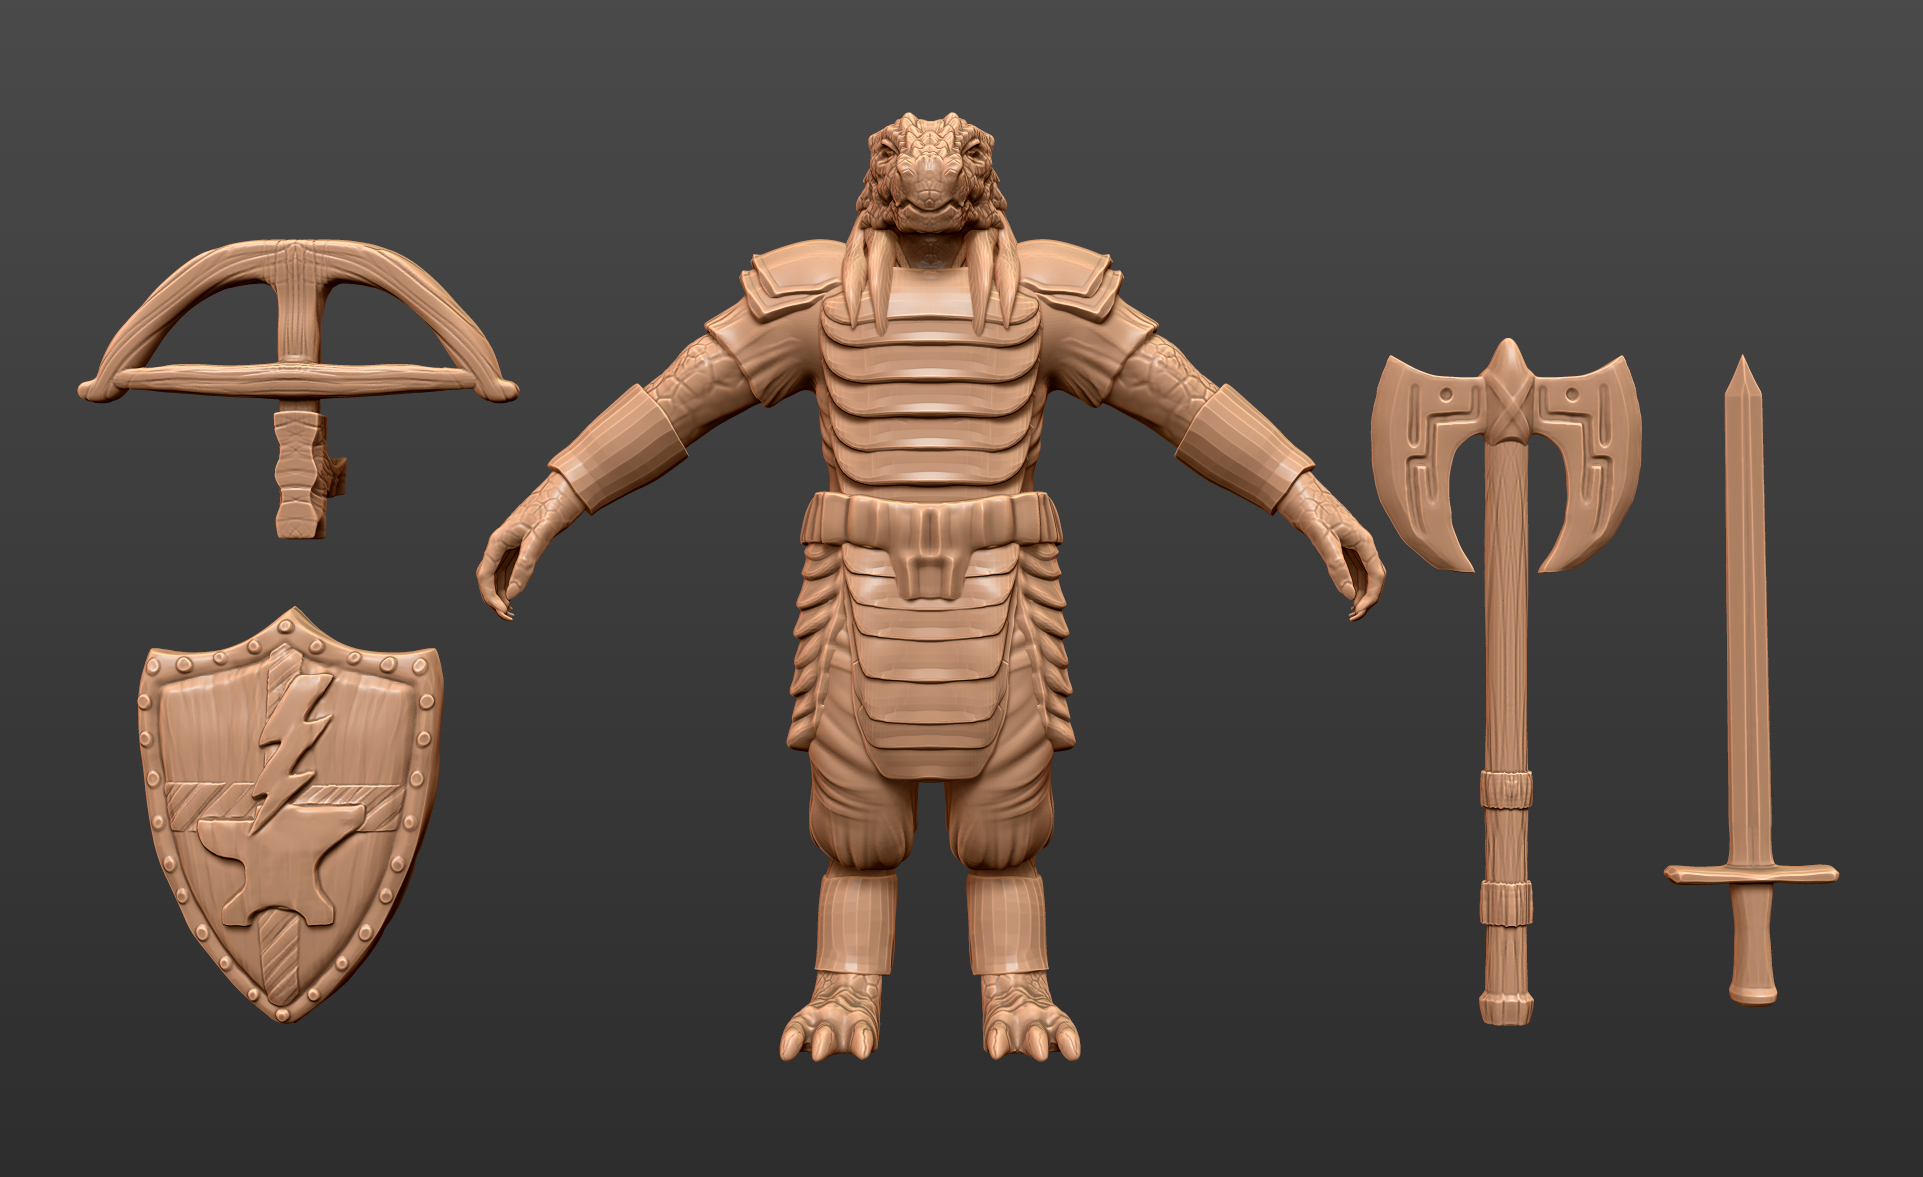 Organizing your Character - I like to make a 3D character sheet when designing my minis. The $5.50 winner did a fantastic job explaining each weapon and design, so I didn't have to fuss too much with that.